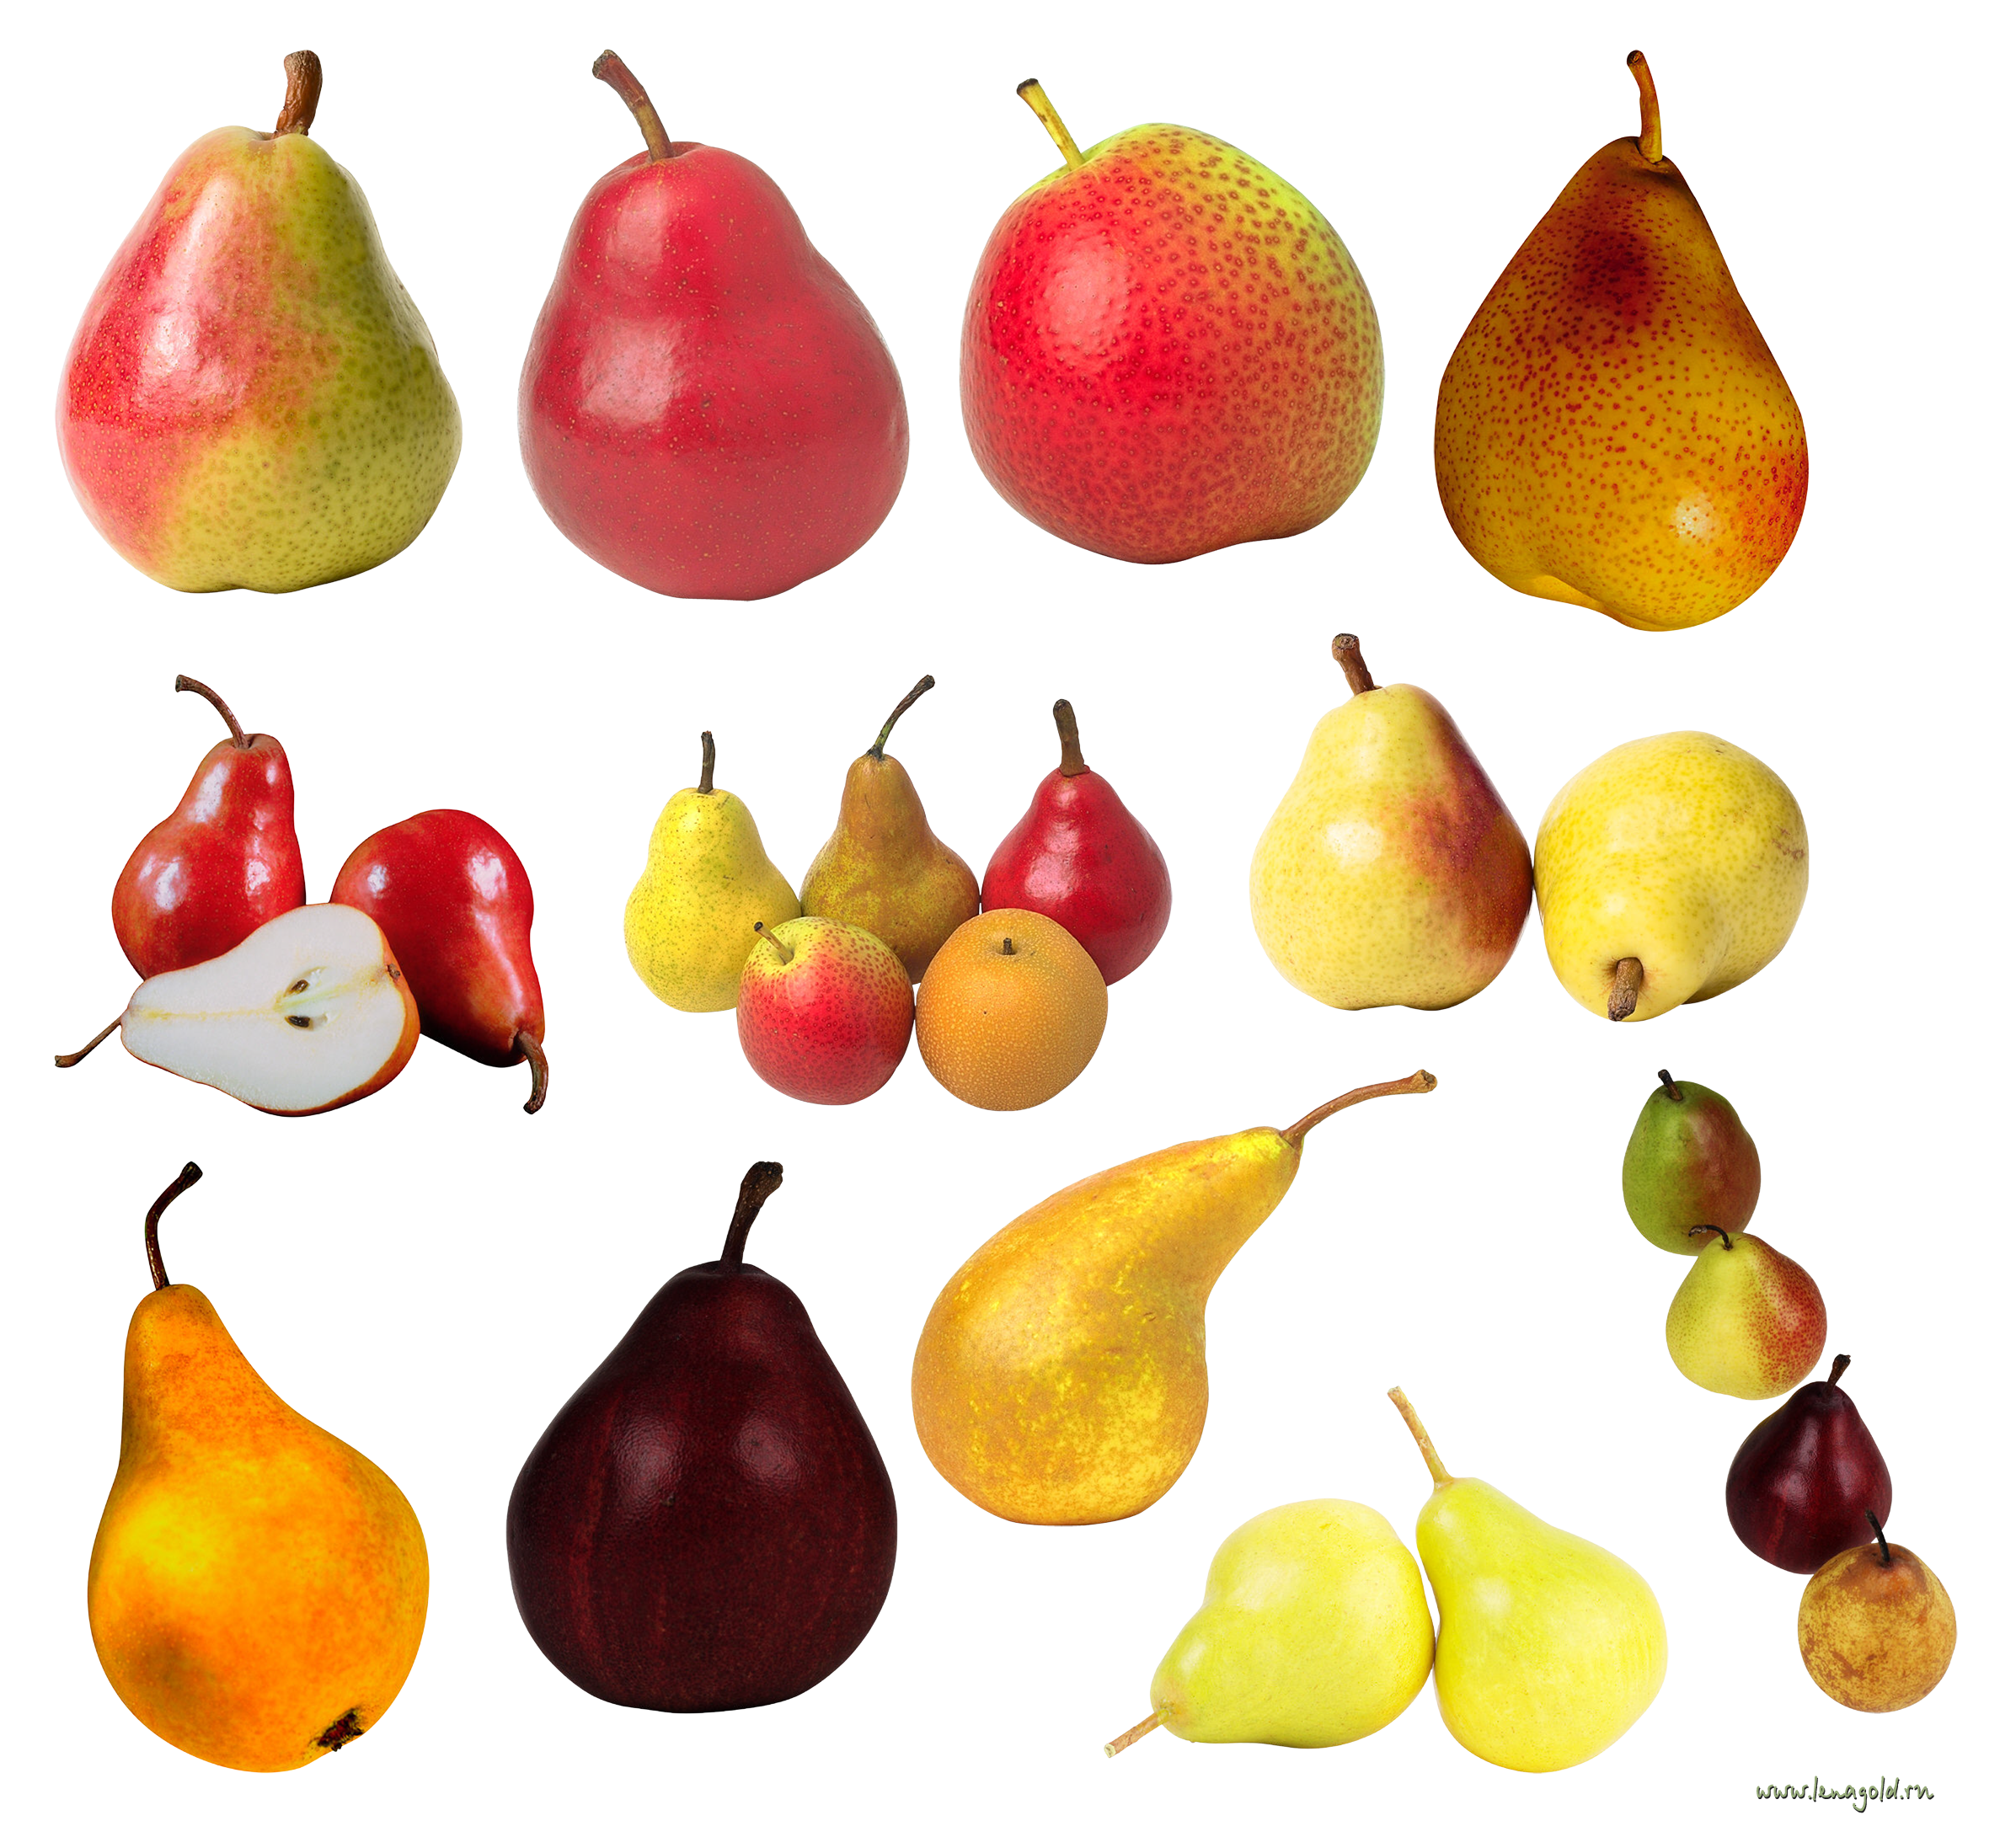 Png images free download. Pear clipart pear shape